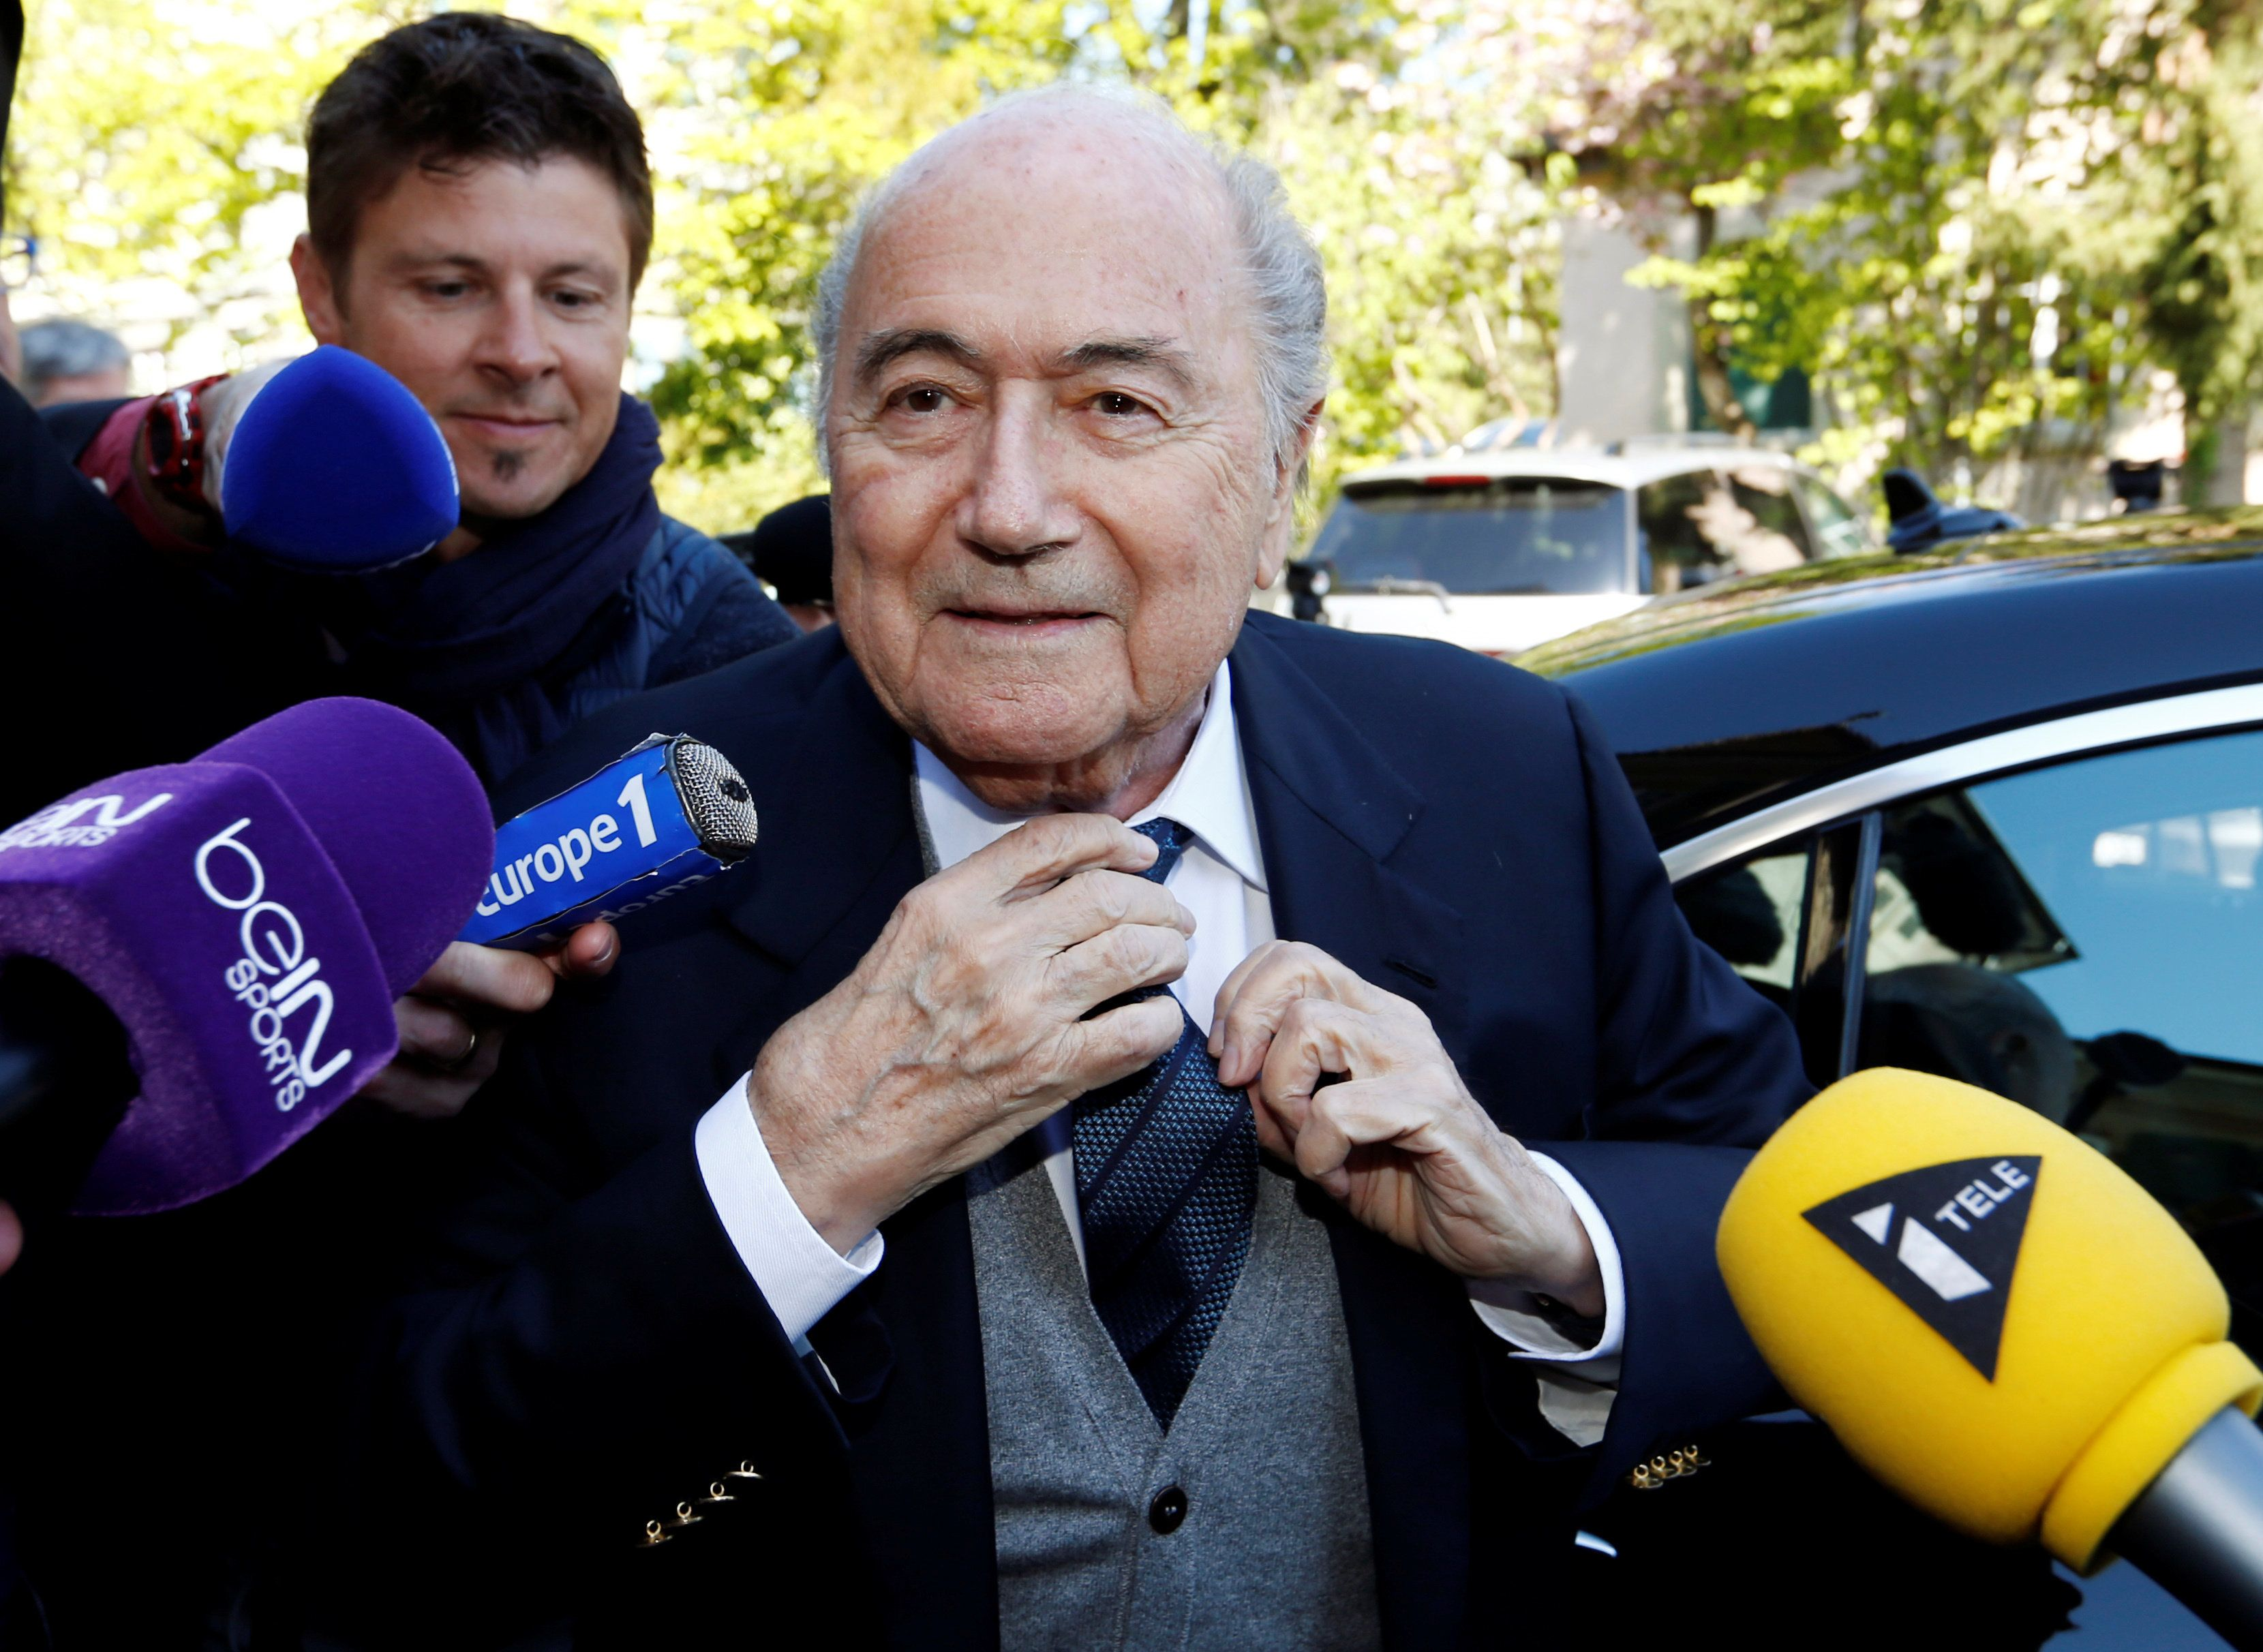 Fifa Officials Blatter, Valcke And Kattner Awarded Themselves